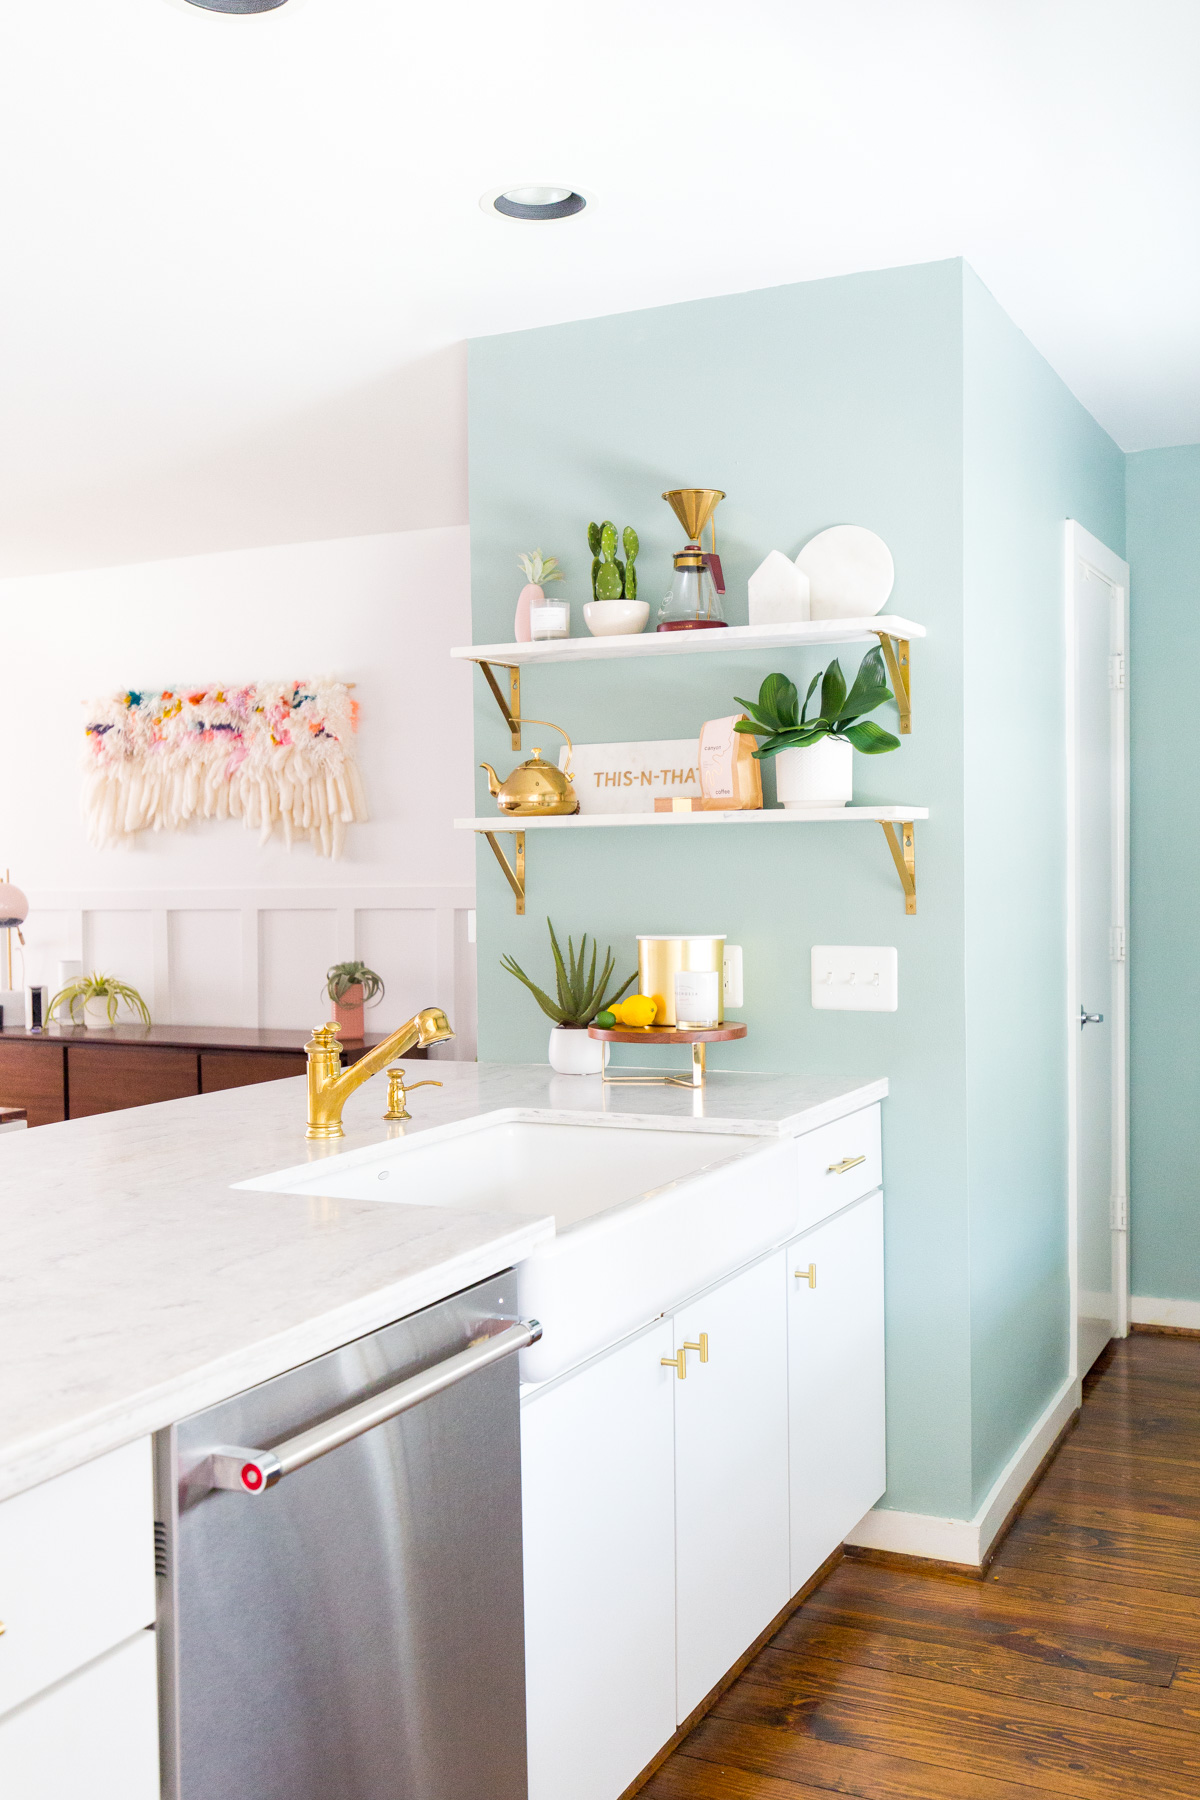 11 Kitchen Decorating Ideas for Your Walls   The Anastasia Co. on Kitchen Decoration Ideas  id=26211